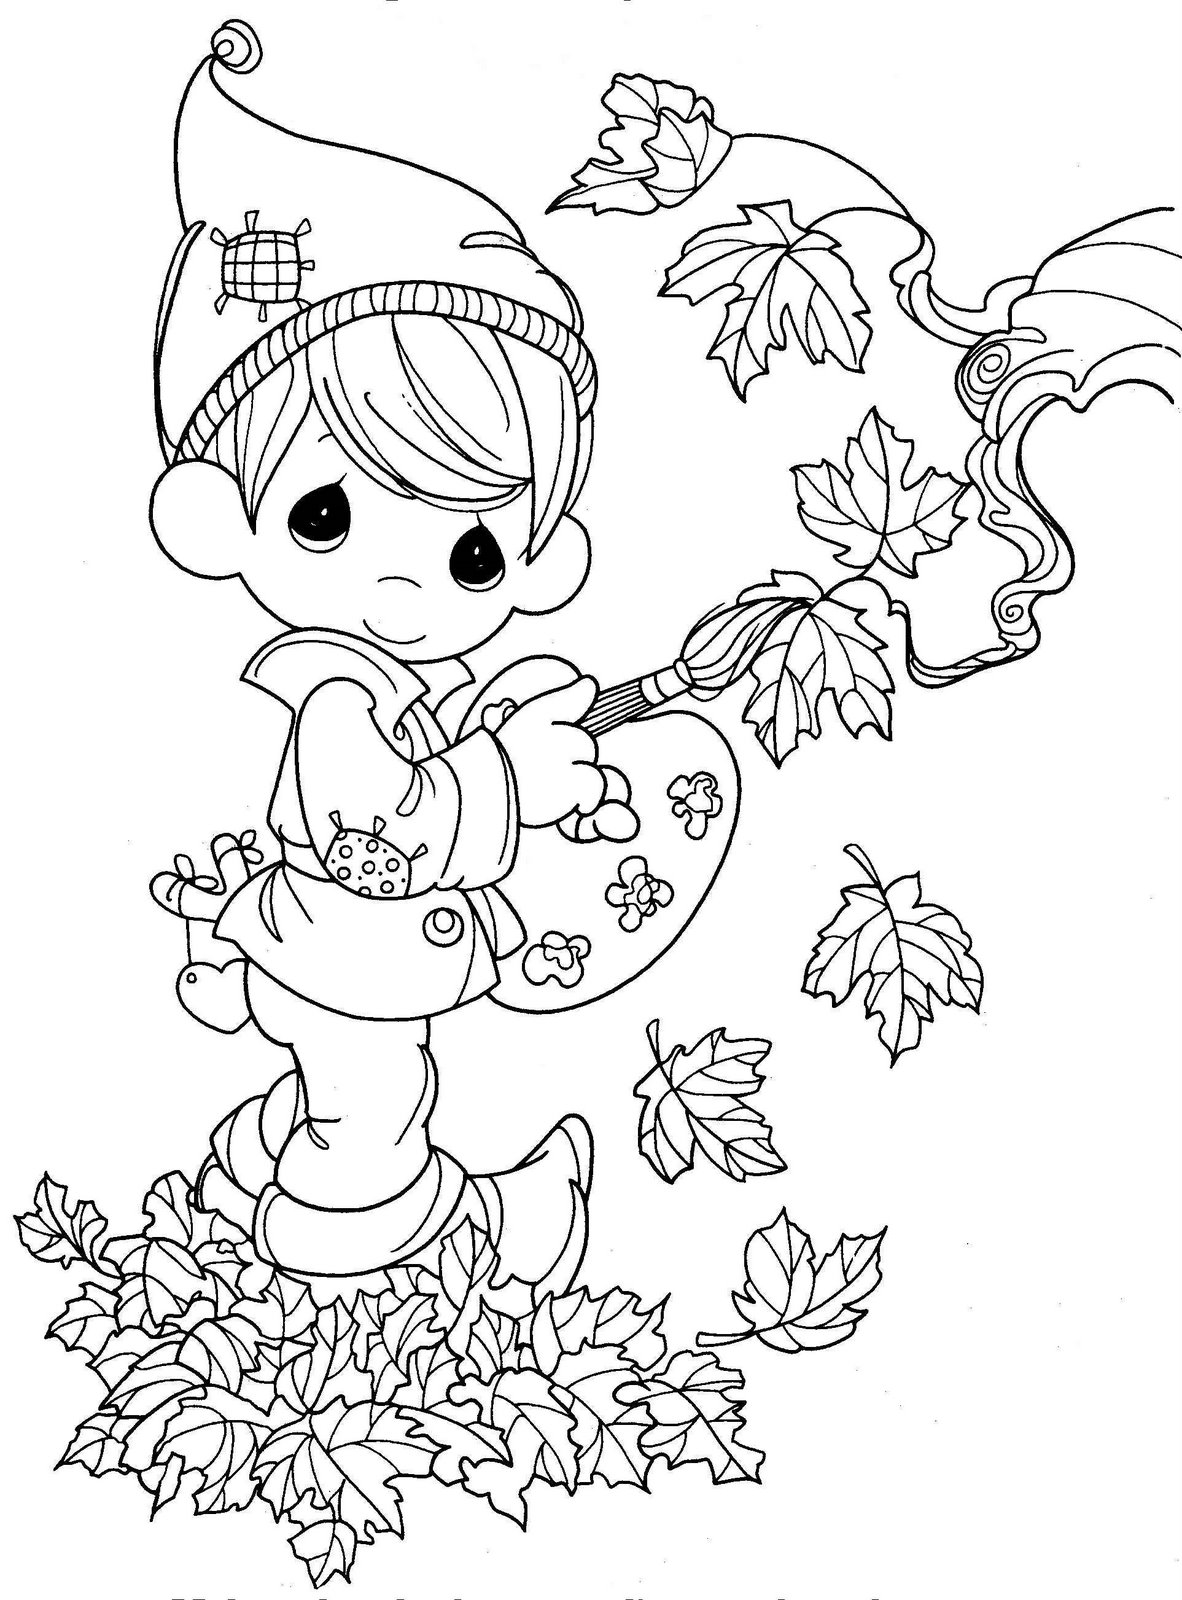 fun coloring pictures hard coloring pages free large images pictures coloring fun